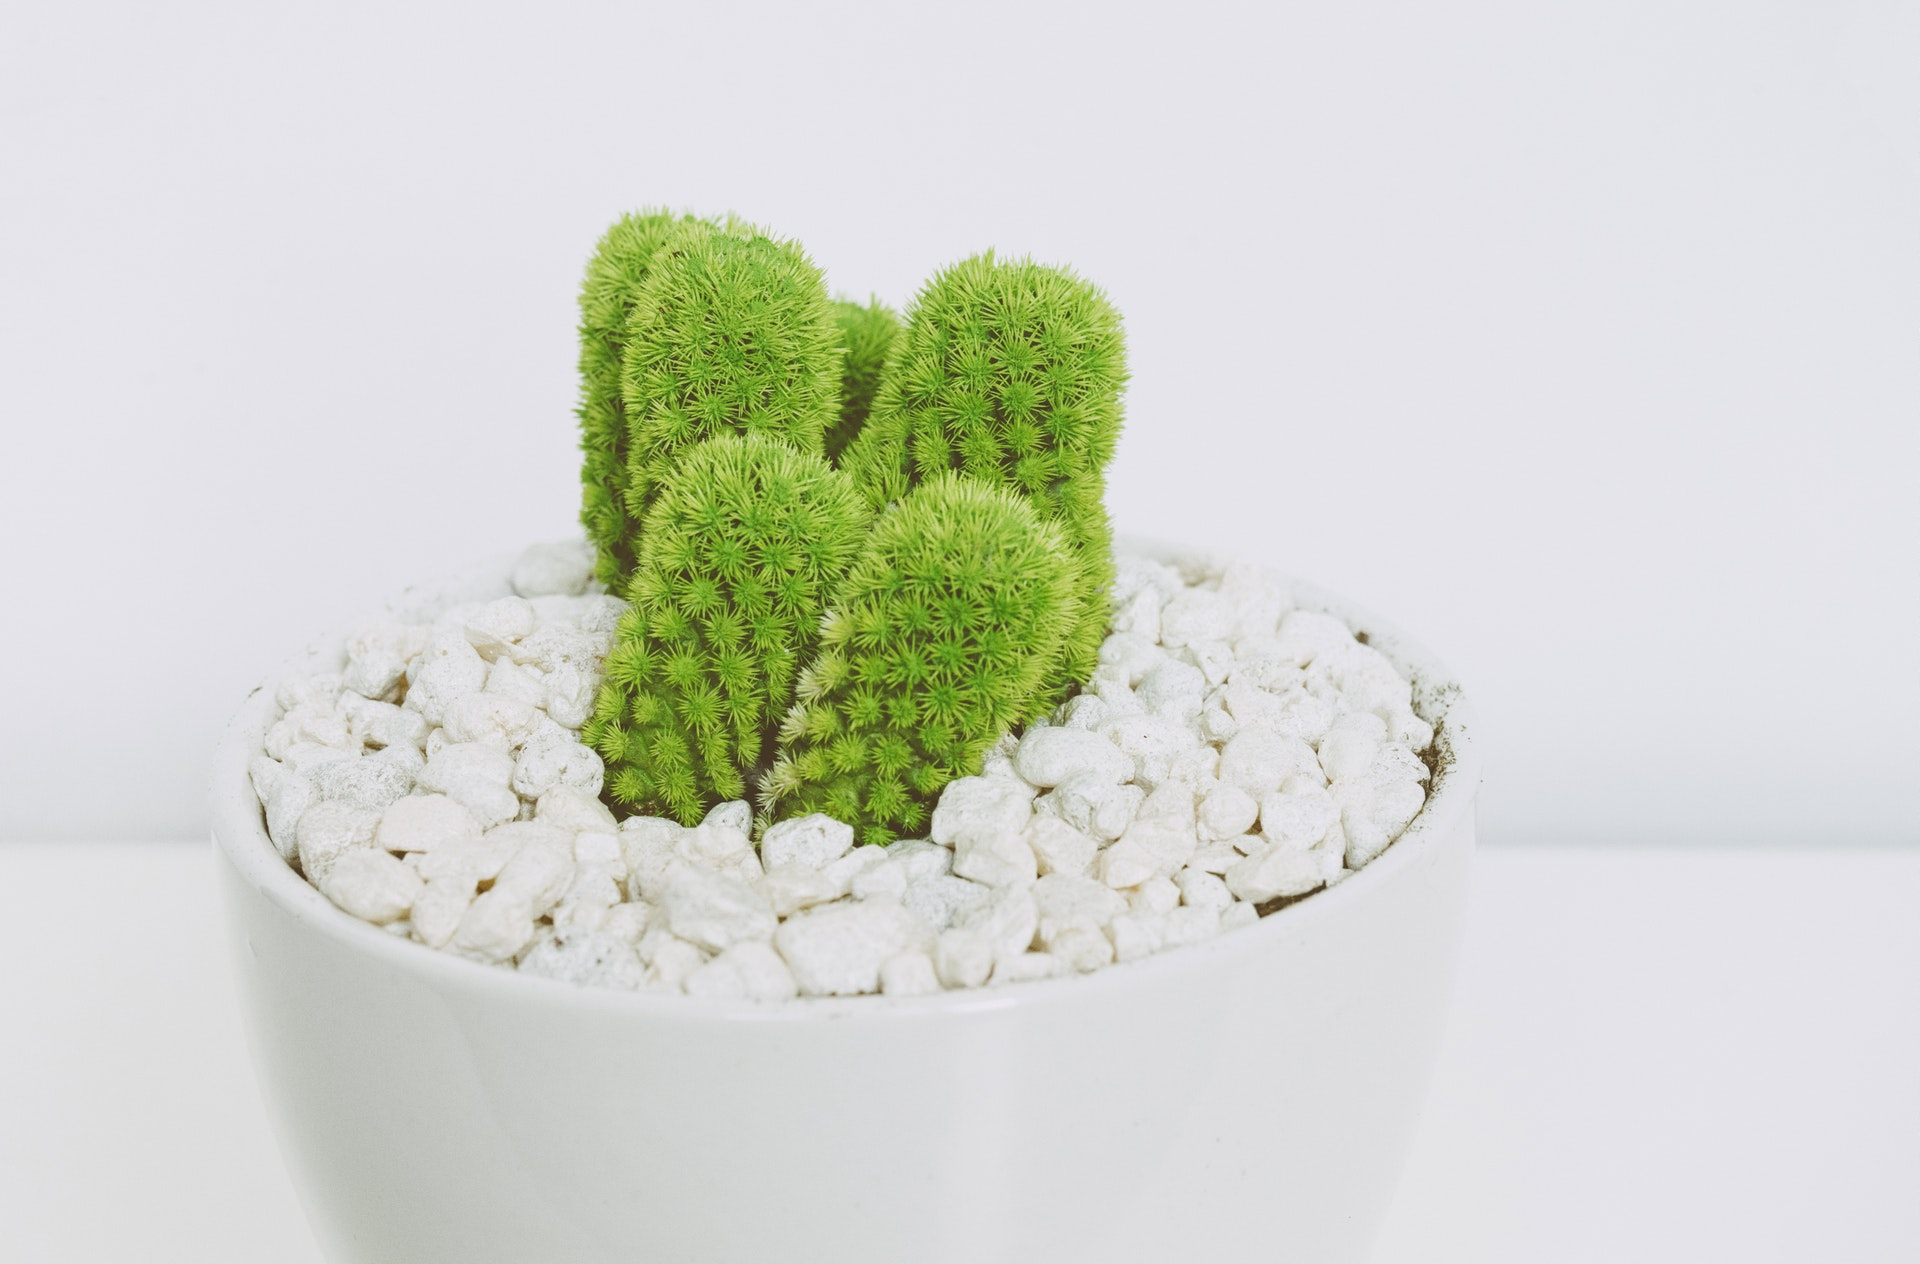 DIY FELT CRAFT: POP CACTUS